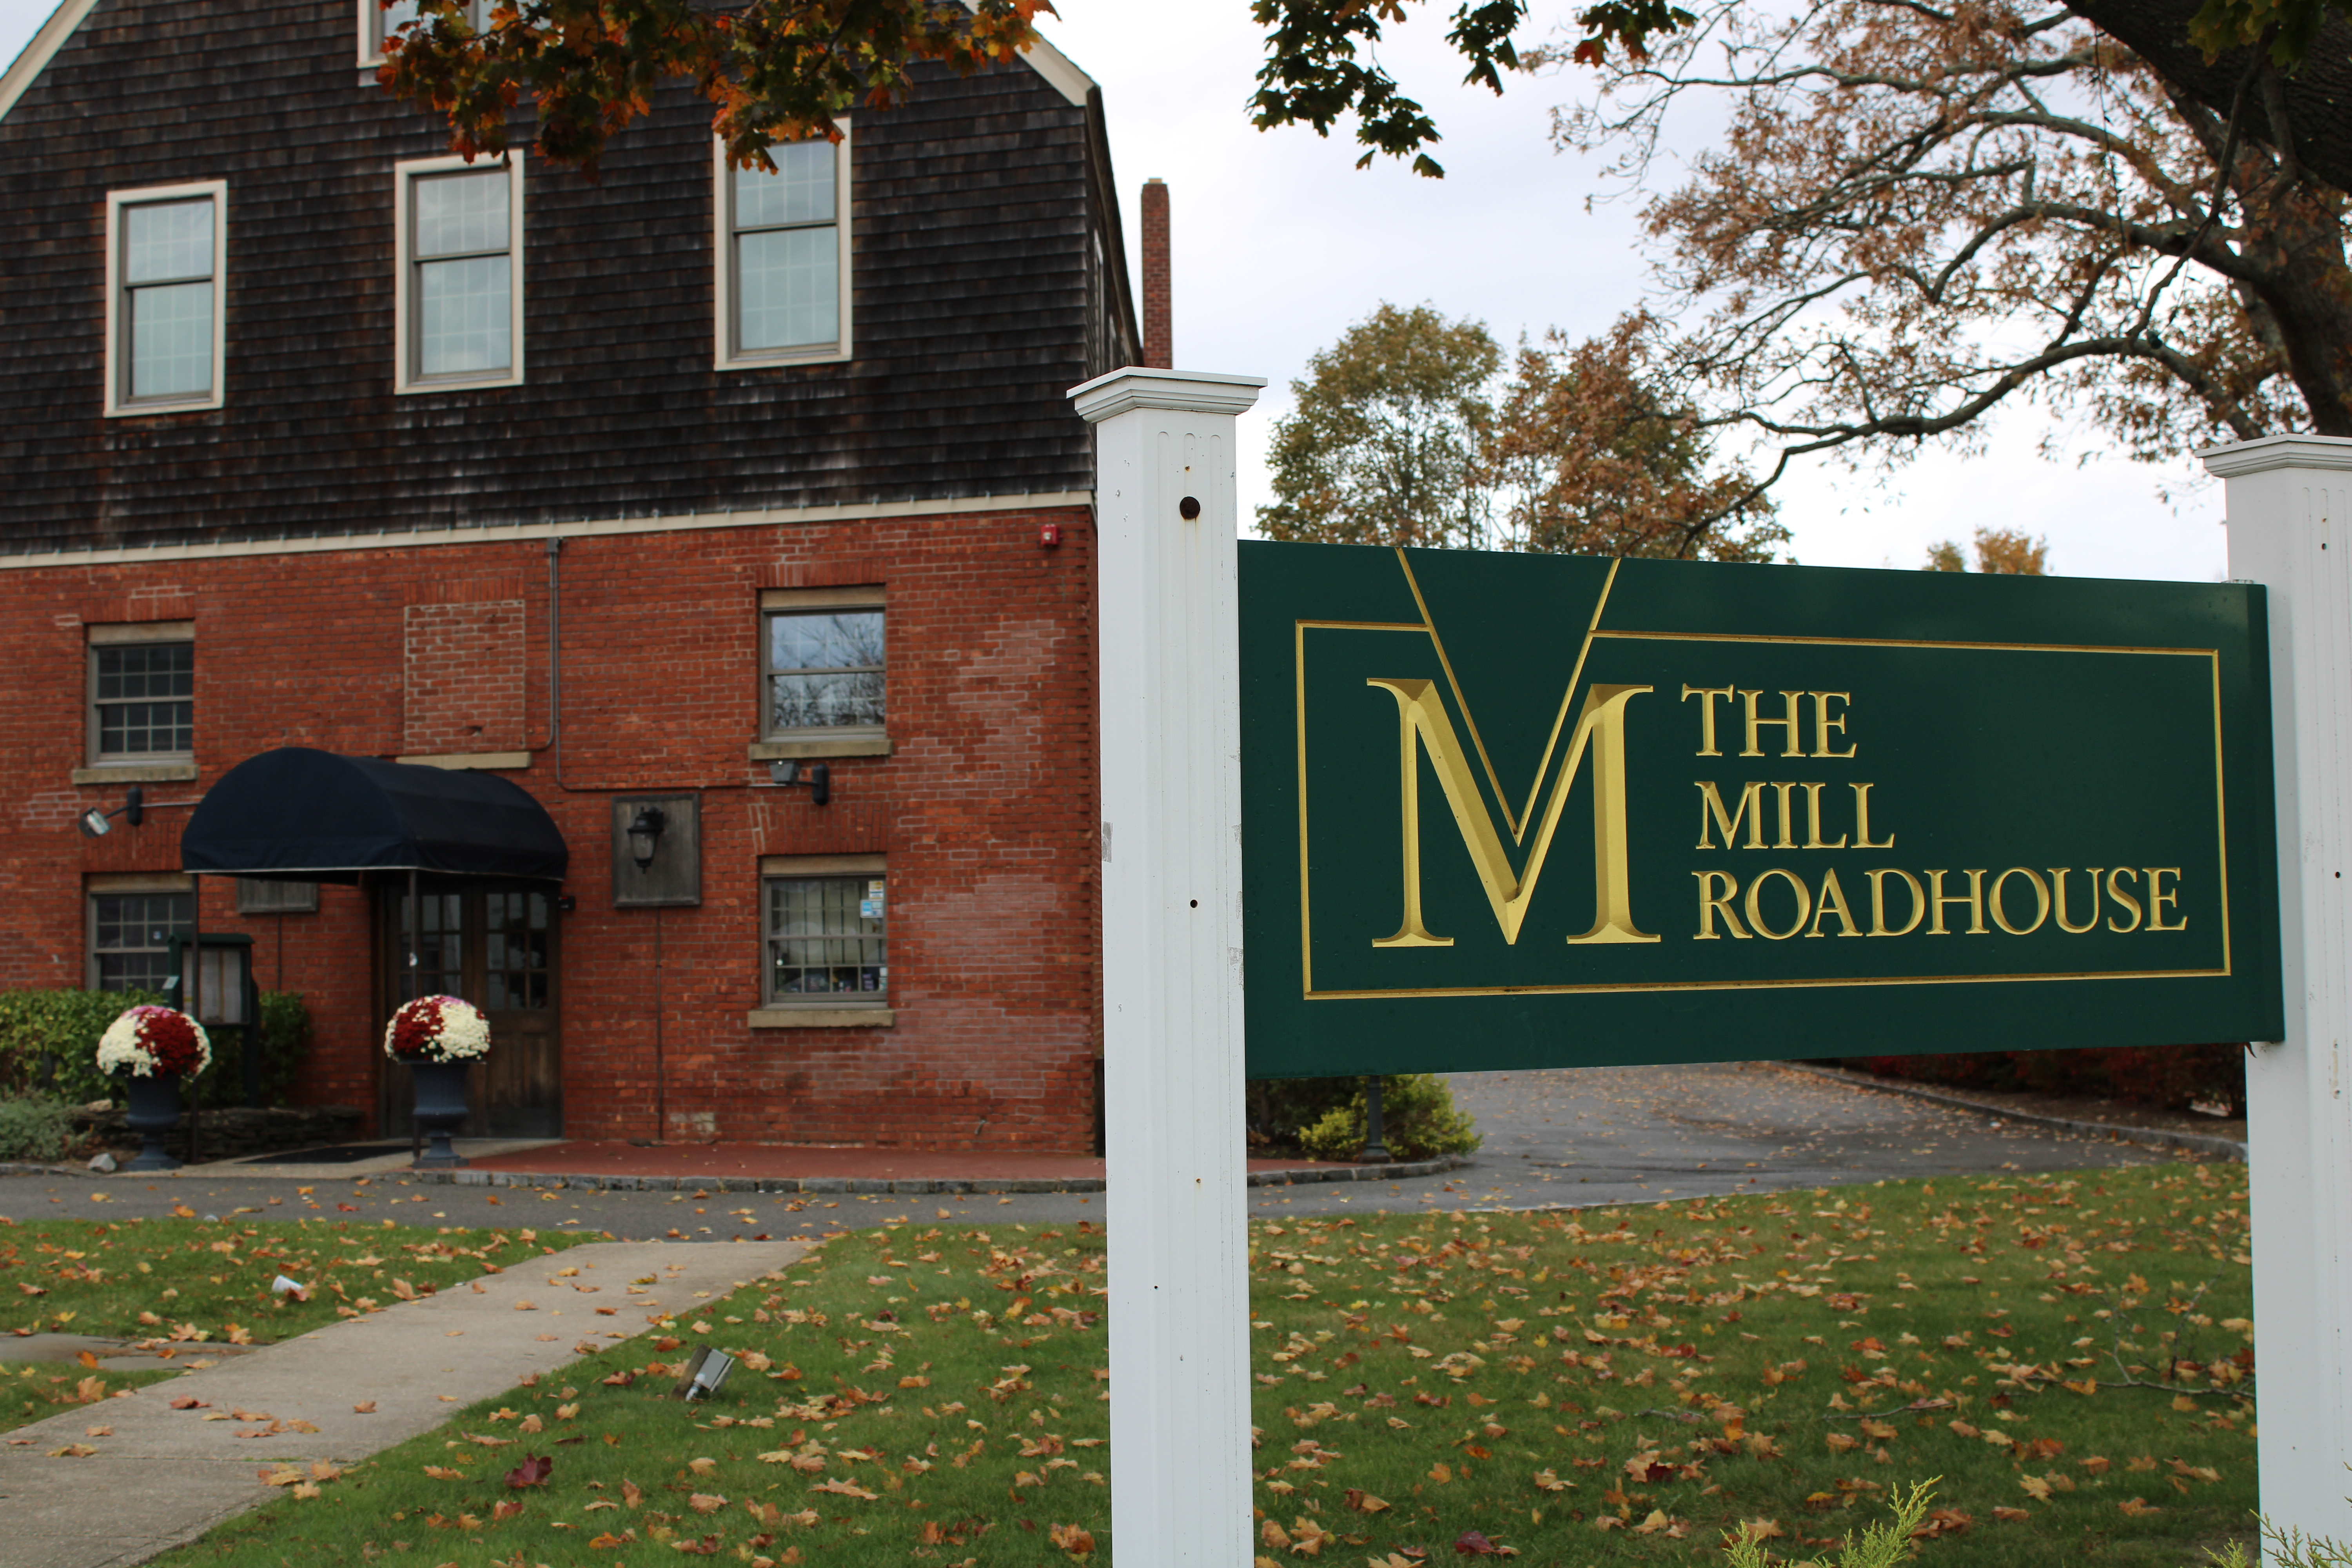 The discussion wil be held at The Mill Roadhouse in Westhampton Beach on Thursday at noon.  RACHEL VALDESPINO